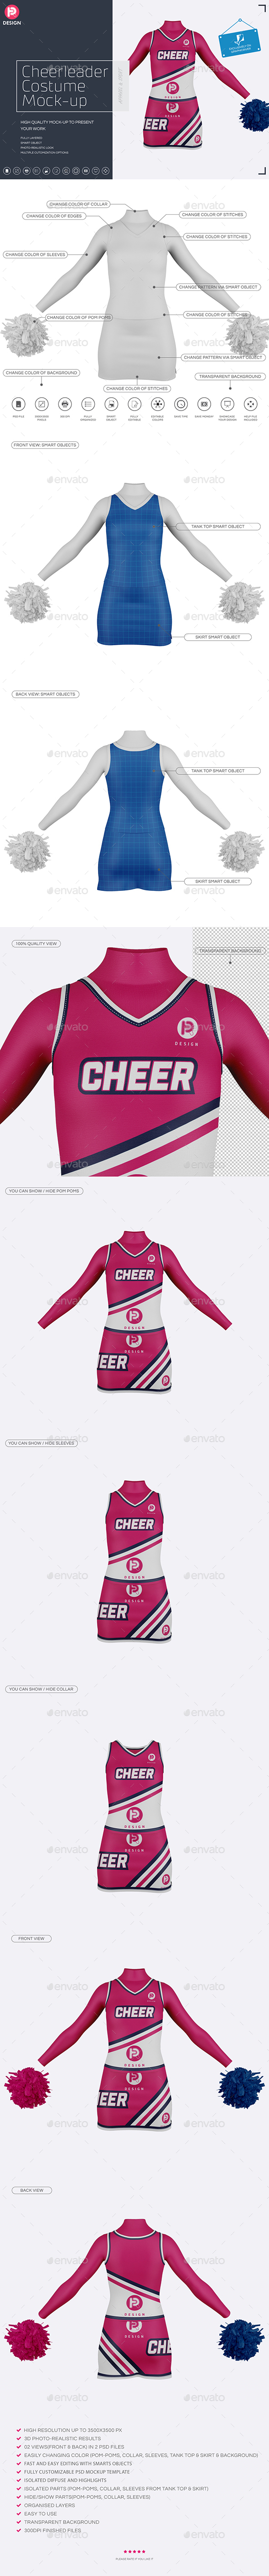 GraphicRiver Cheerleader Costume Mock-Up Front & Back views 20475648